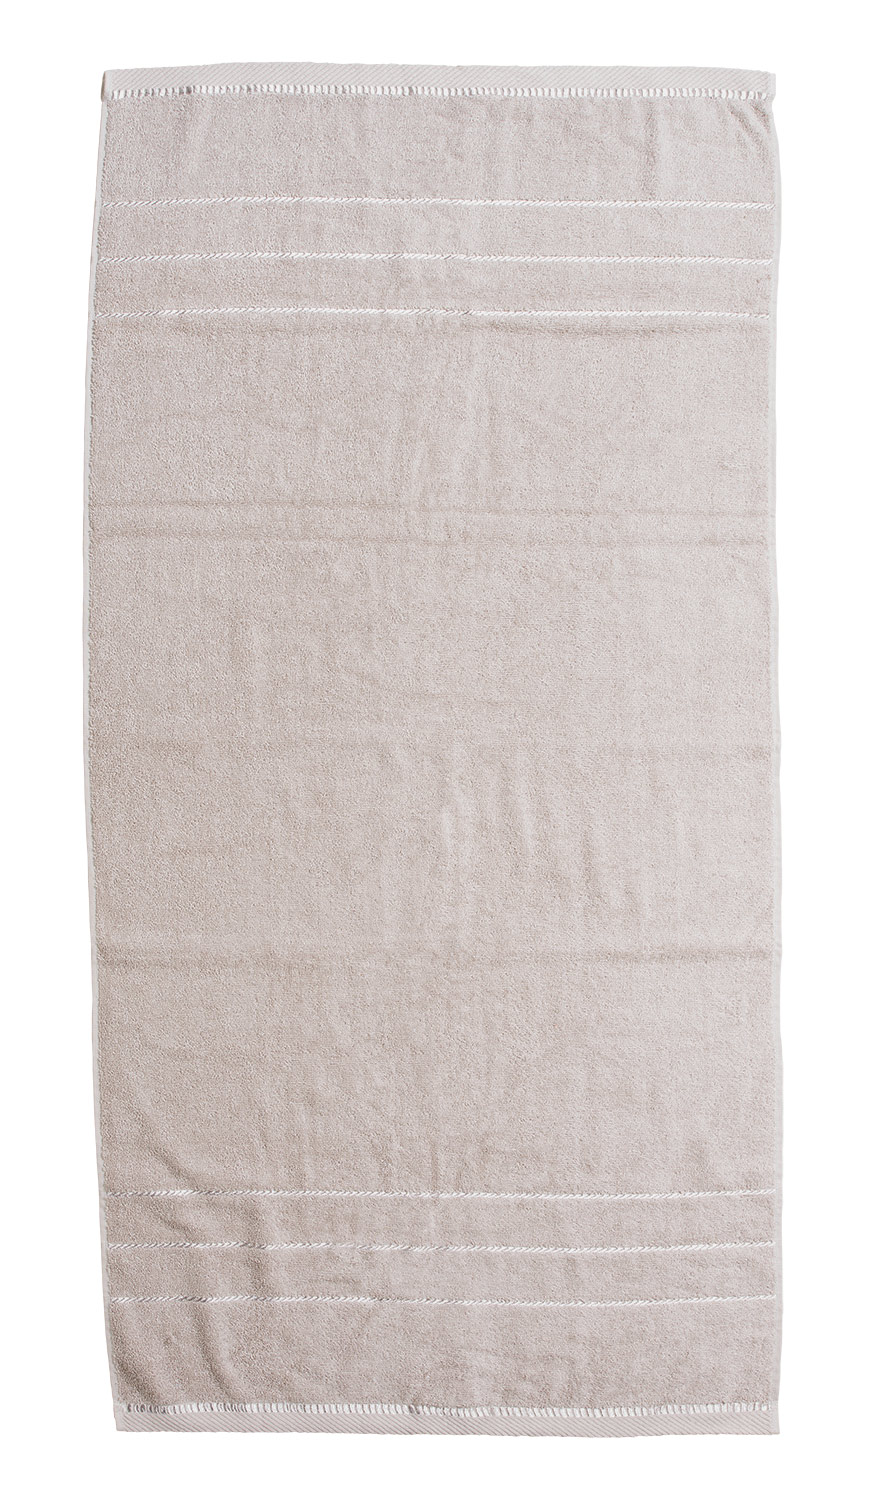 Duschtuch  BANY 1, Taupe, 70x140 cm